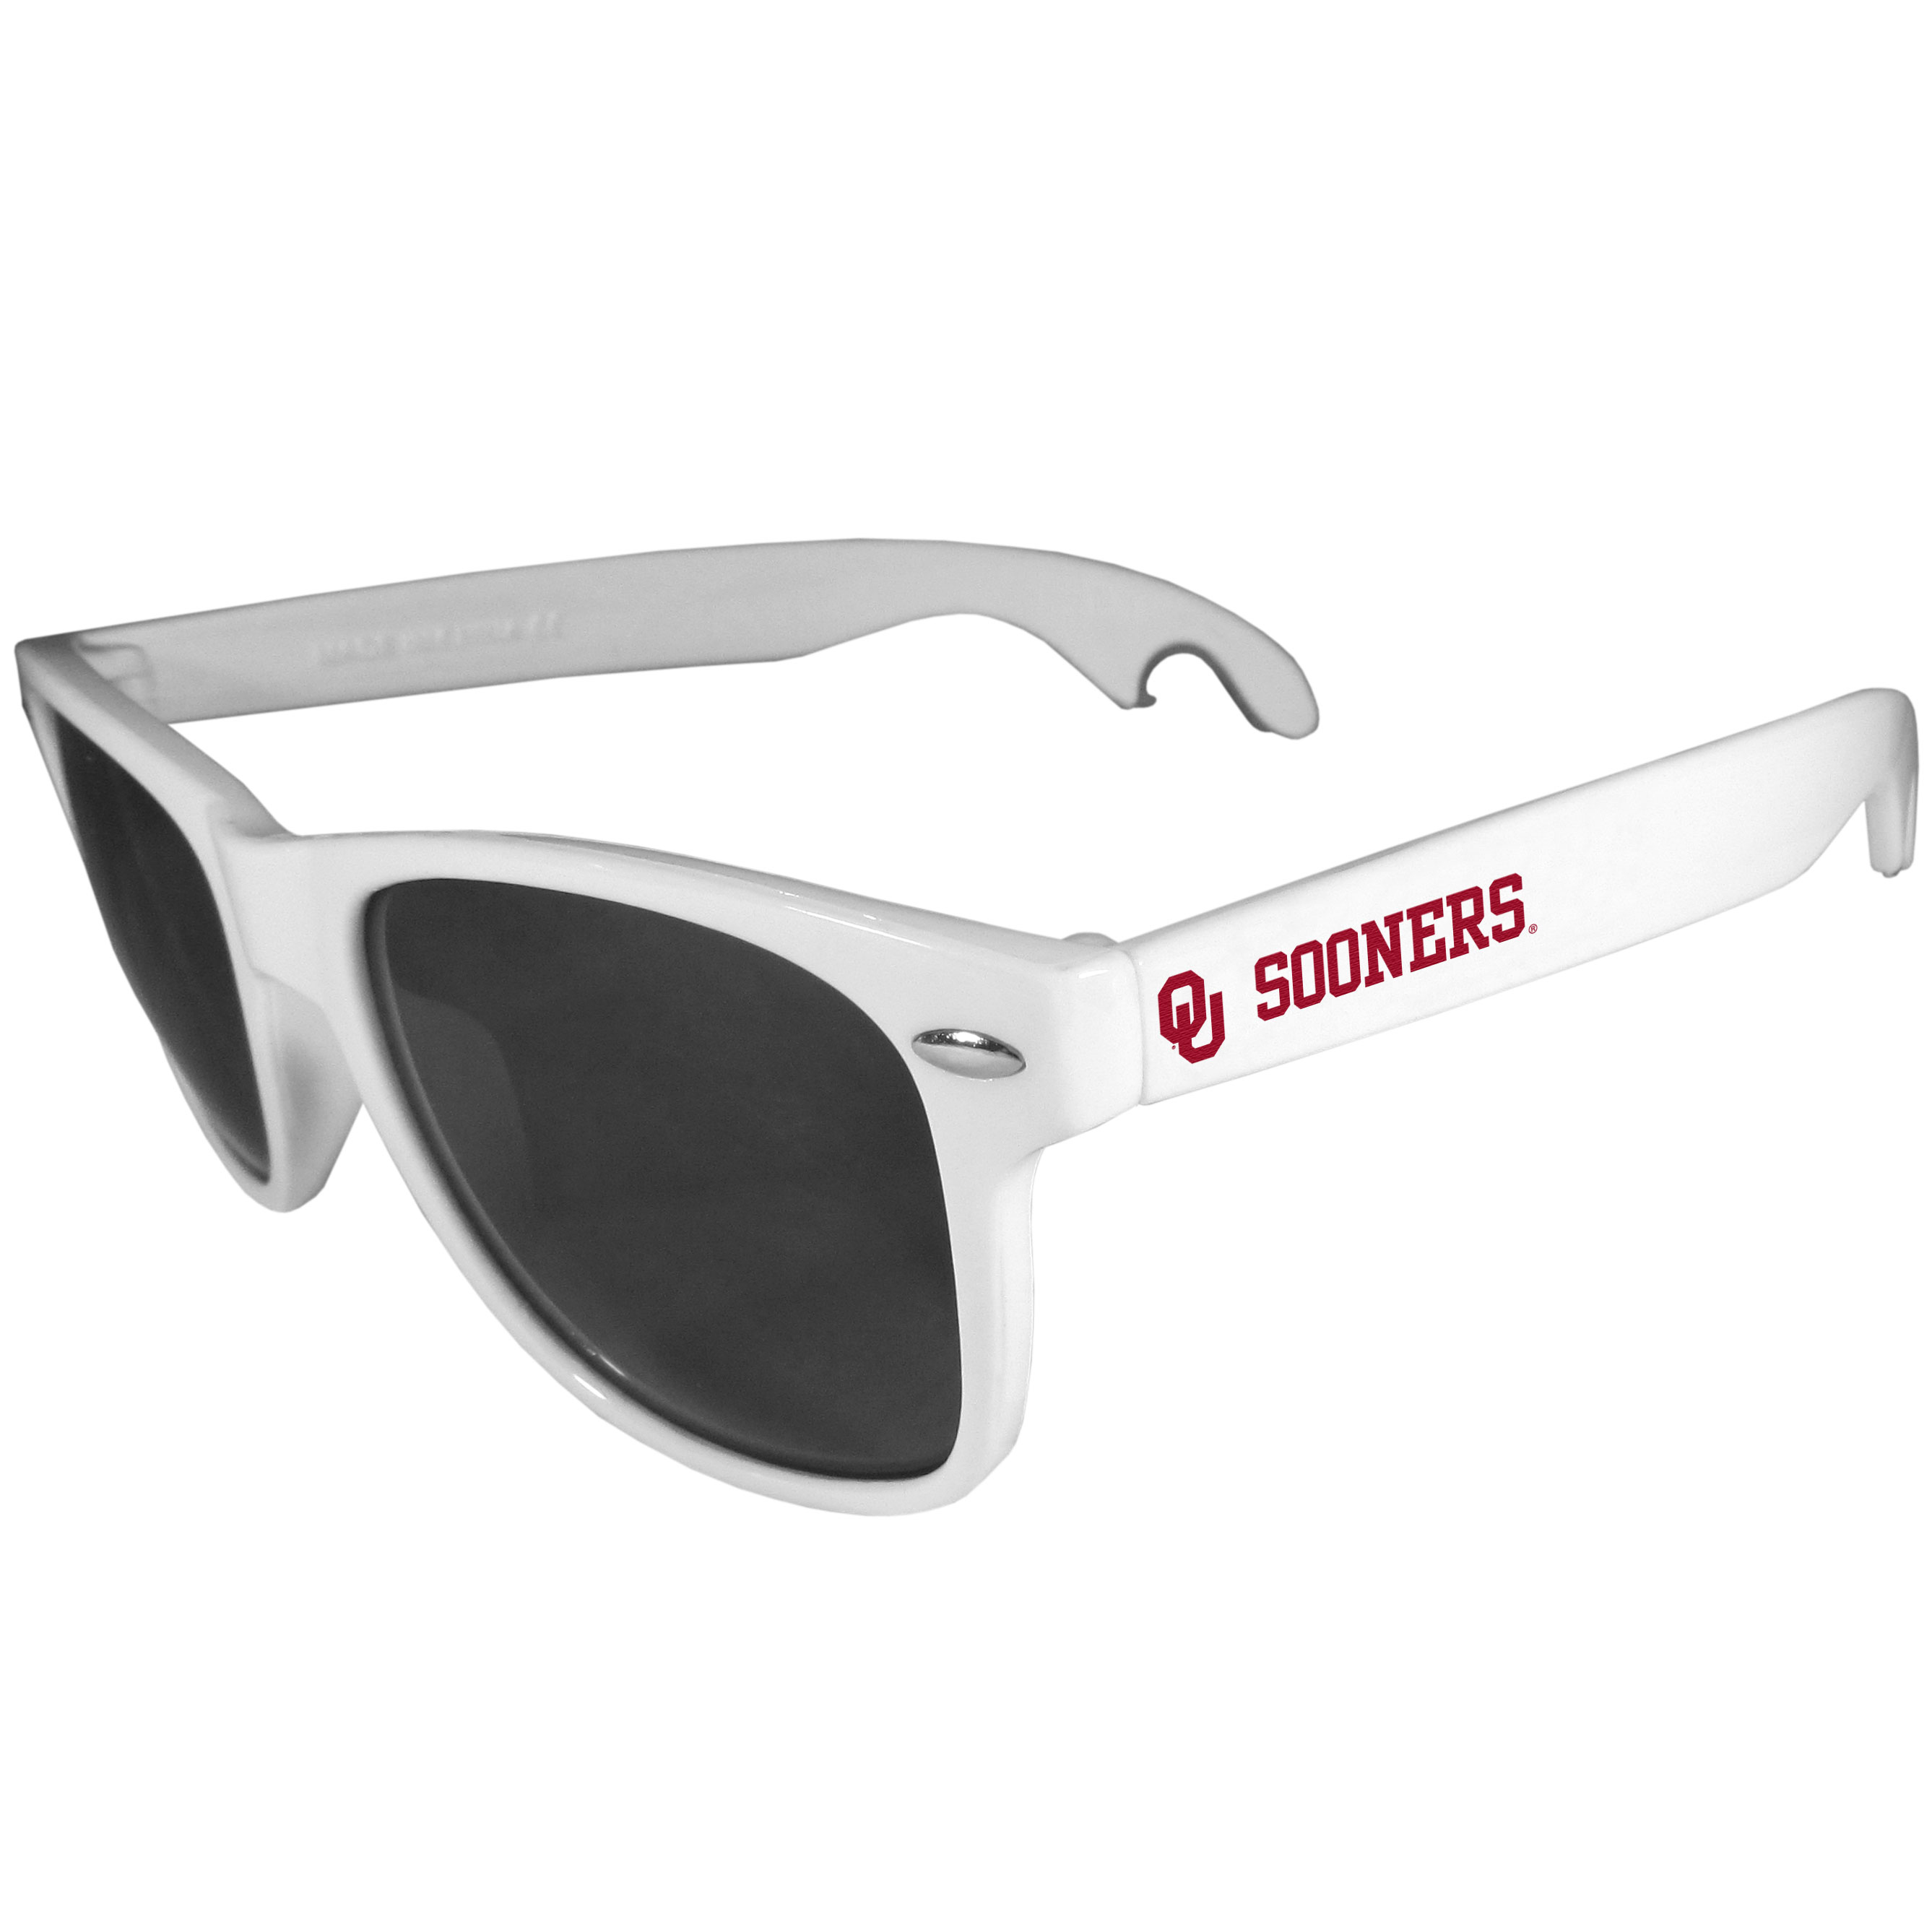 Oklahoma Sooners Beachfarer Bottle Opener Sunglasses, White - Seriously, these sunglasses open bottles! Keep the party going with these amazing Oklahoma Sooners bottle opener sunglasses. The stylish retro frames feature team designs on the arms and functional bottle openers on the end of the arms. Whether you are at the beach or having a backyard BBQ on game day, these shades will keep your eyes protected with 100% UVA/UVB protection and keep you hydrated with the handy bottle opener arms.